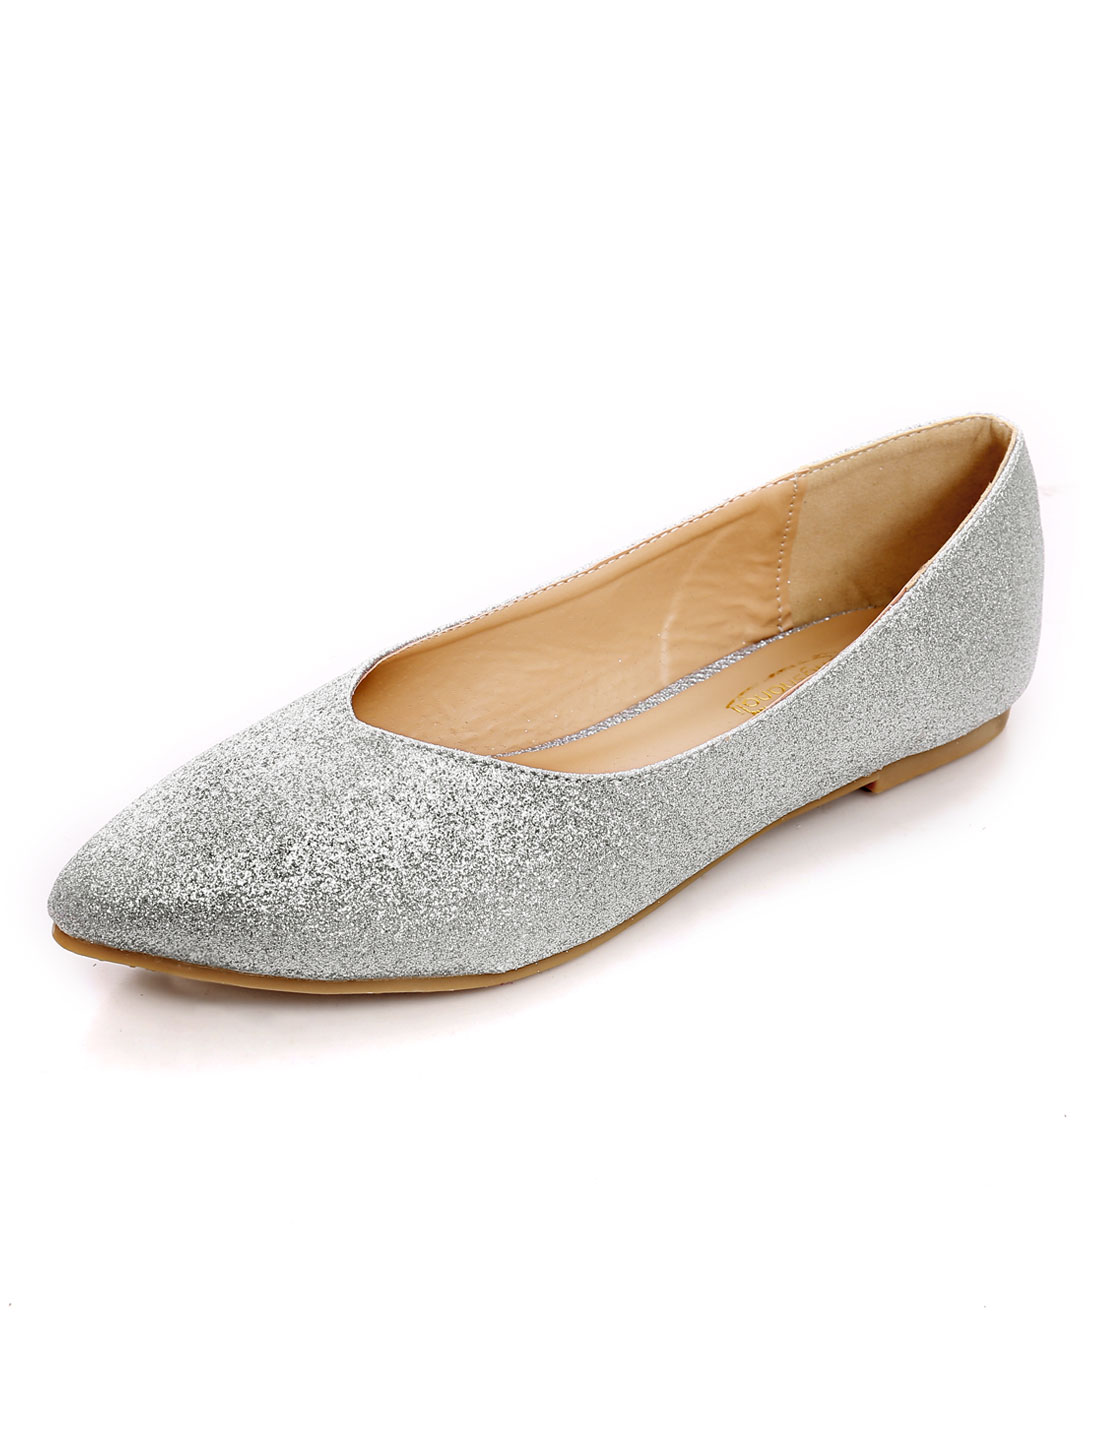 Women Shiny Decor Pointed Toe Relaxed Flats Silver Tone US 10.5